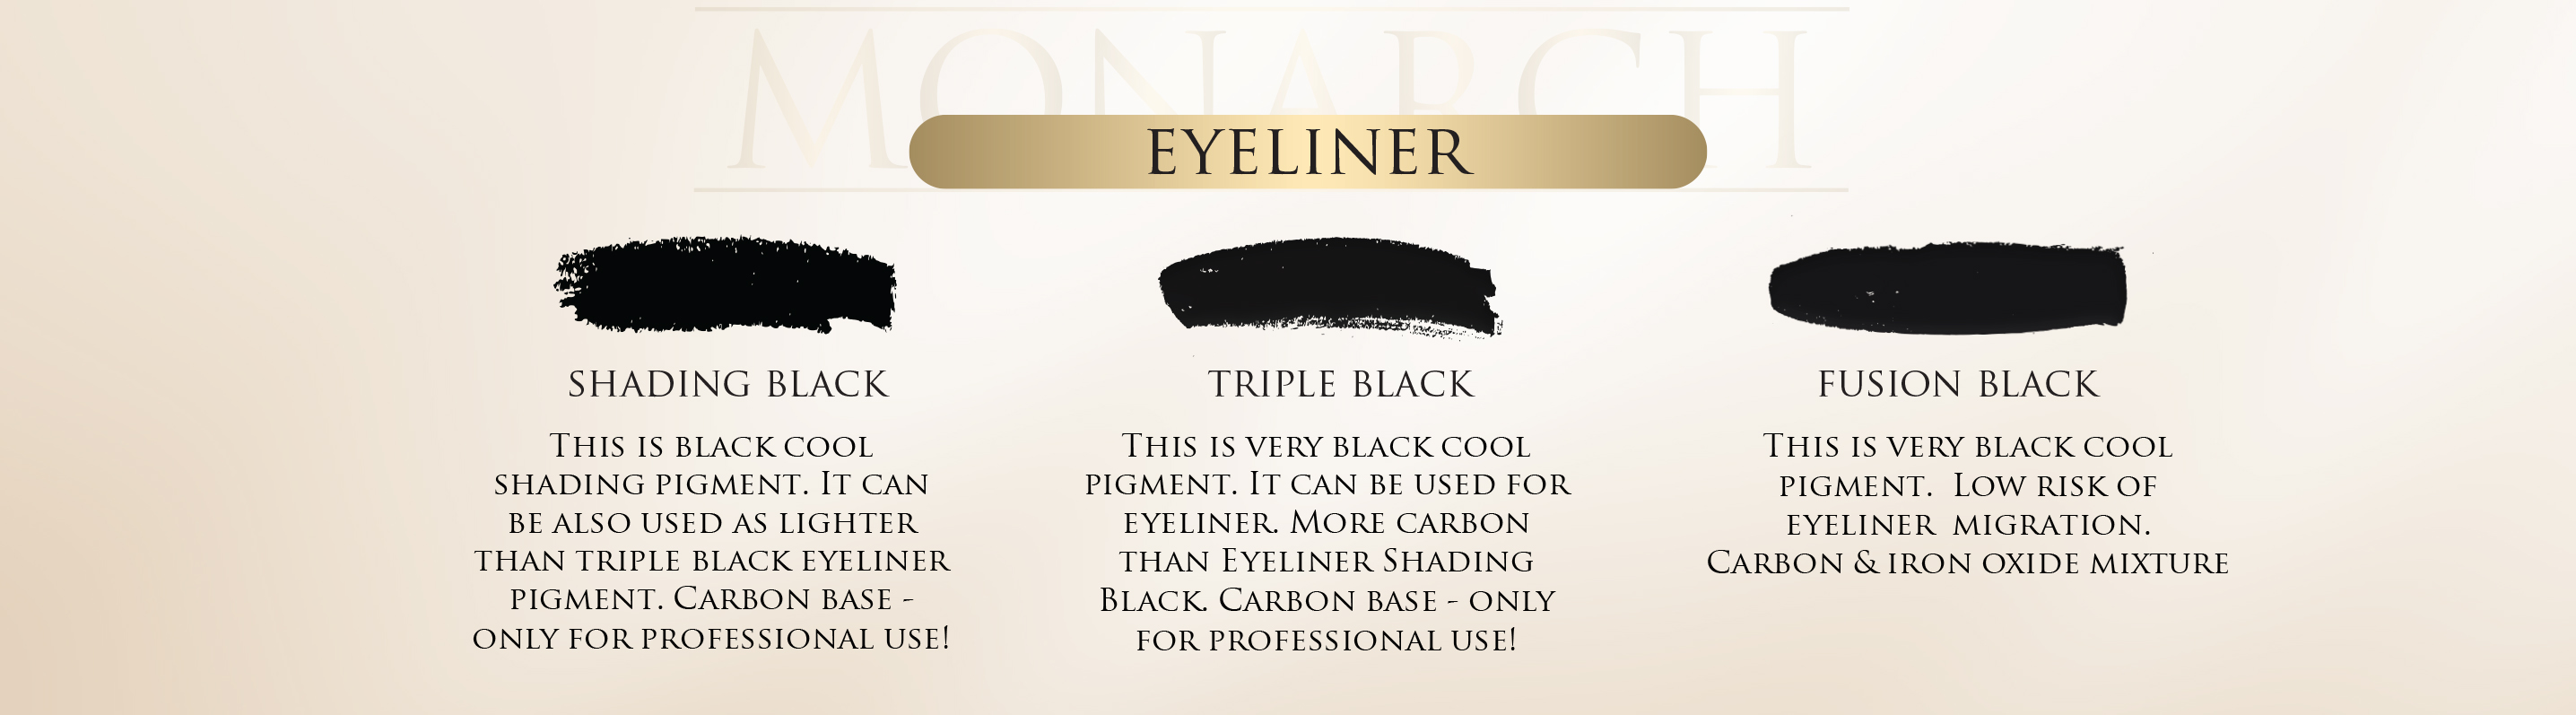 SM_expression_eyeliner_color.jpg